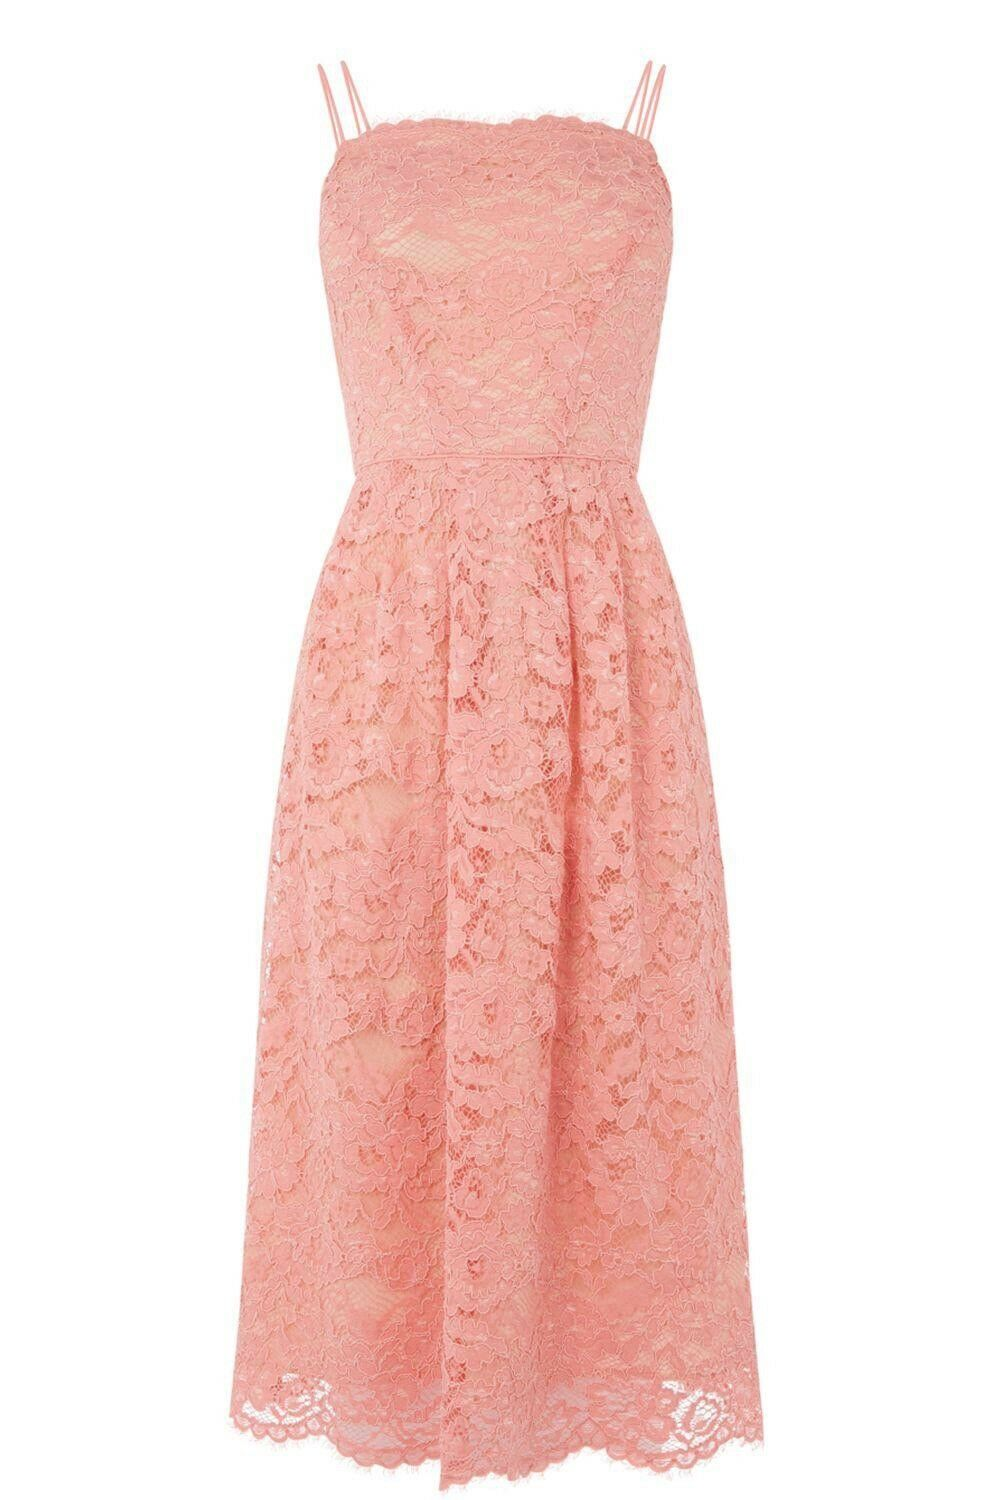 BNWT OASIS LADIES PINK LACE CAMI MIDI OCCASION DRESS SIZE 10 - BRAND NEW RRP